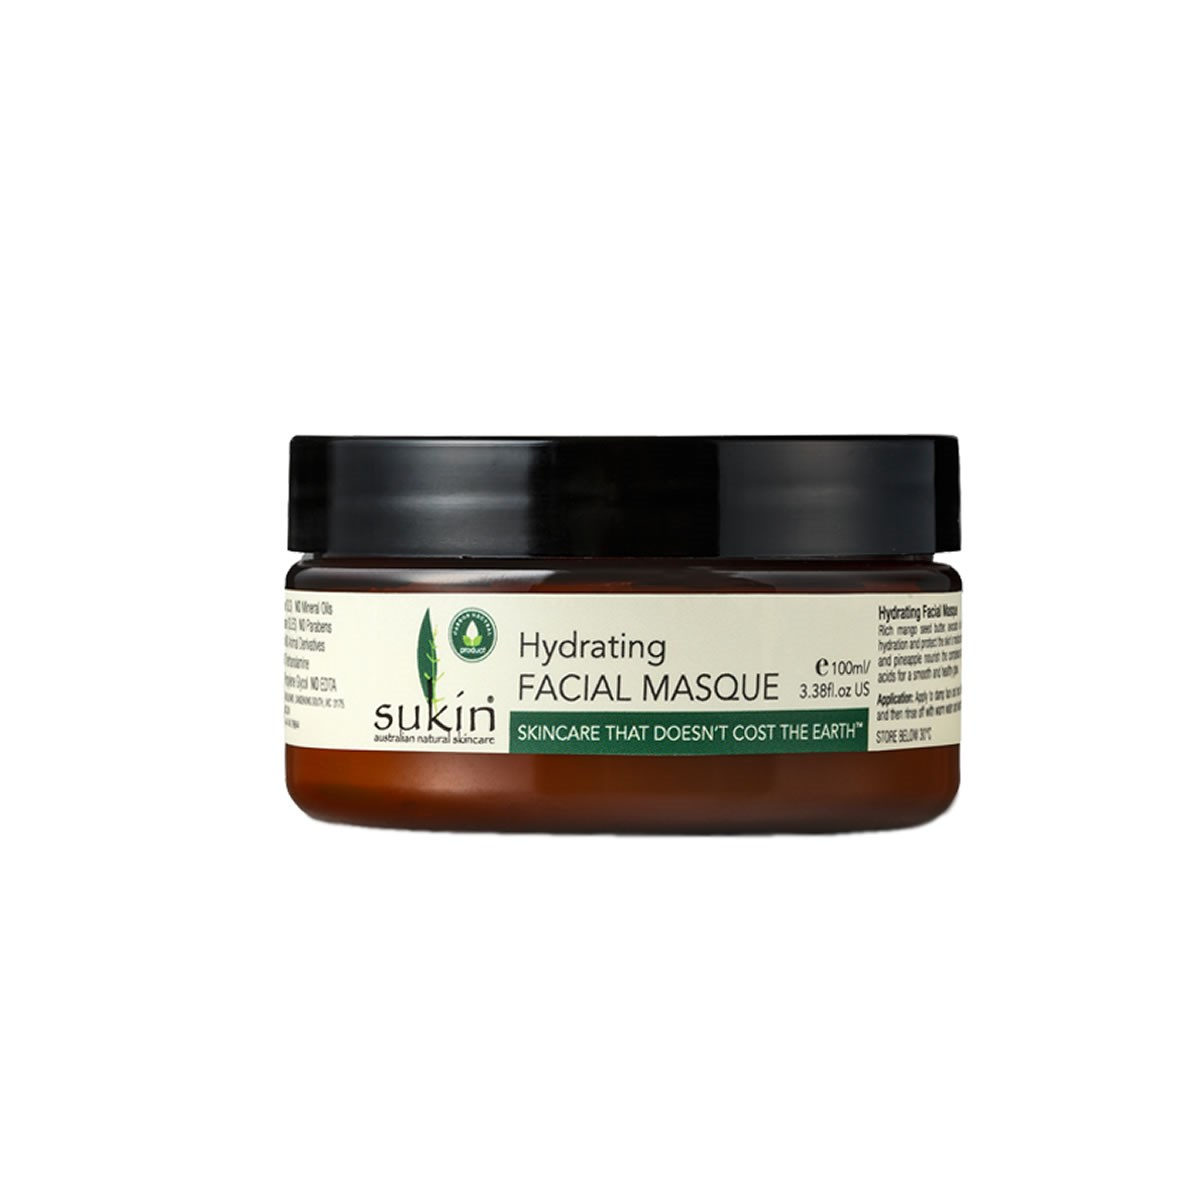 Sukin Hydrating Facial Masque